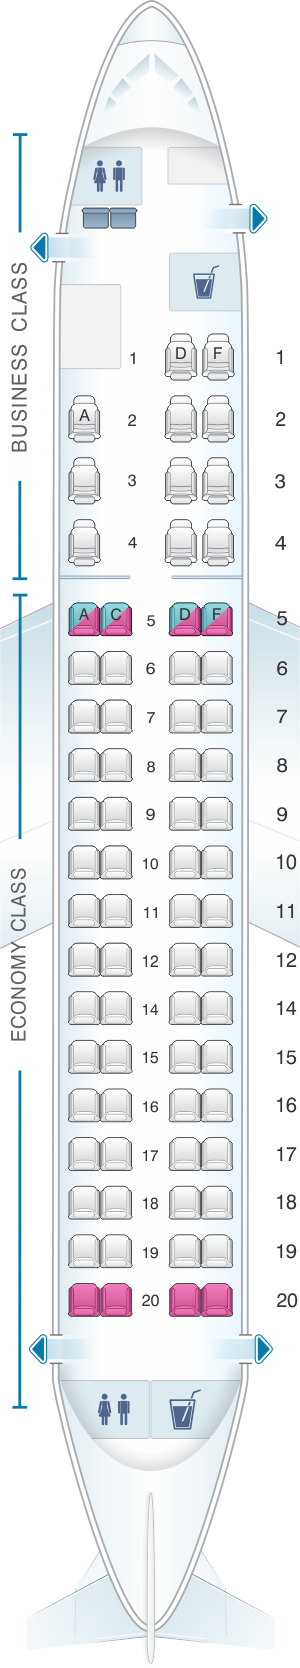 Seat map for Oman Air Embraer E175